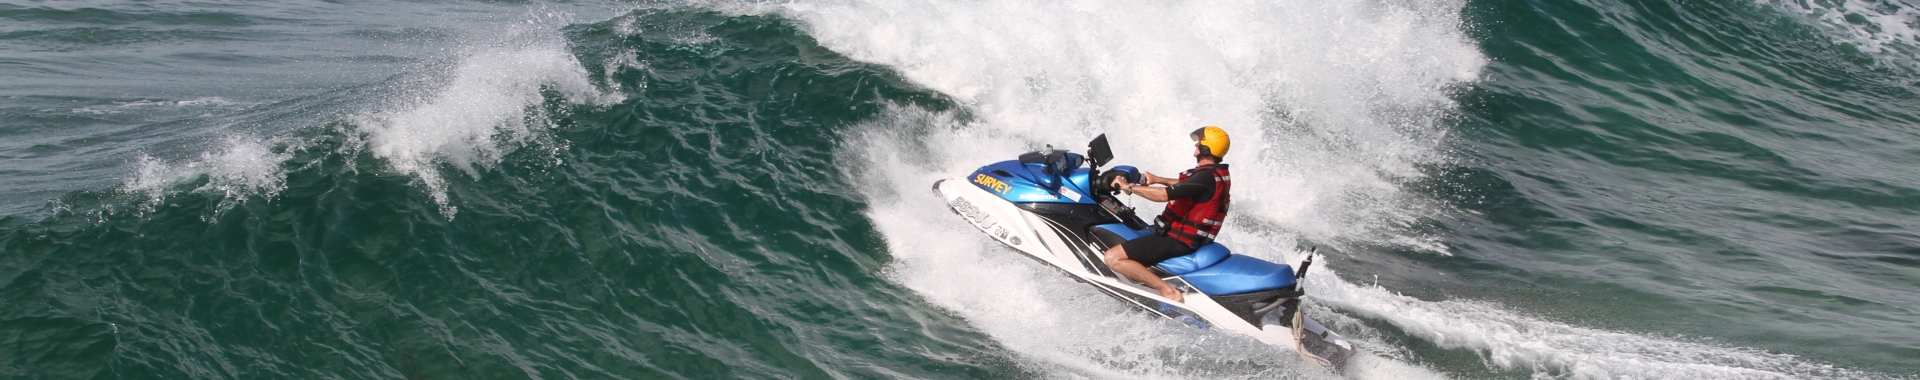 JETSKI-SURF-ZONE-BATHYMETRY